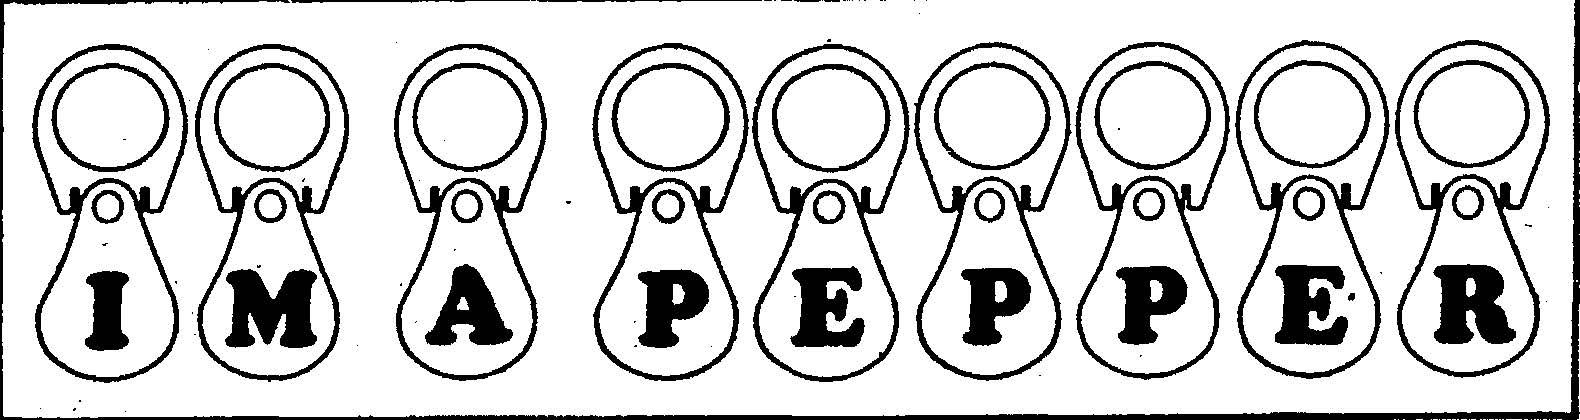 """Clipping from an """"I'm A Pepper"""" advertisement published on July 3, 1981."""